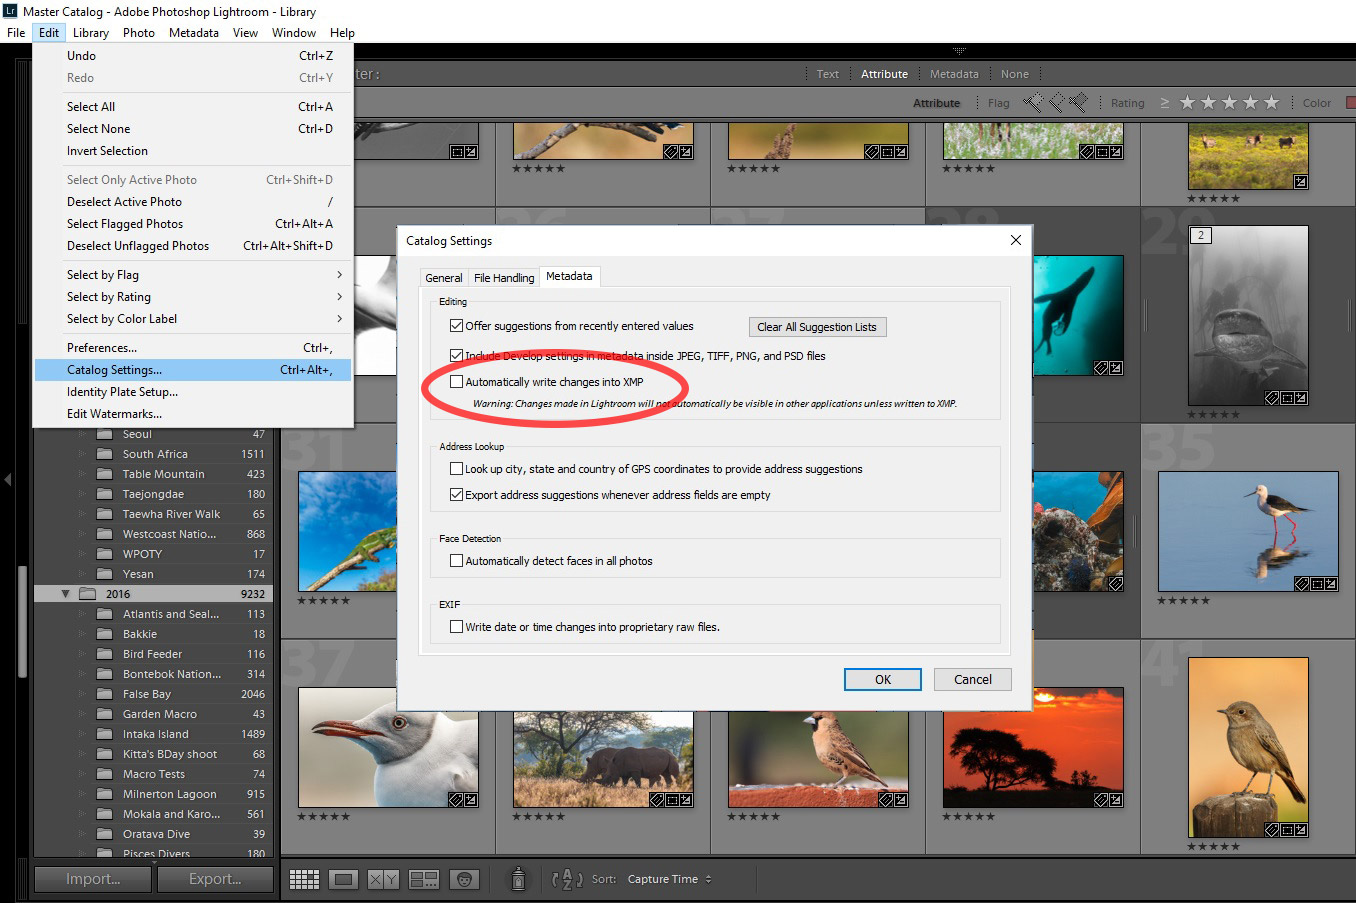 Automatically write changes to XMP in Adobe Lightroom